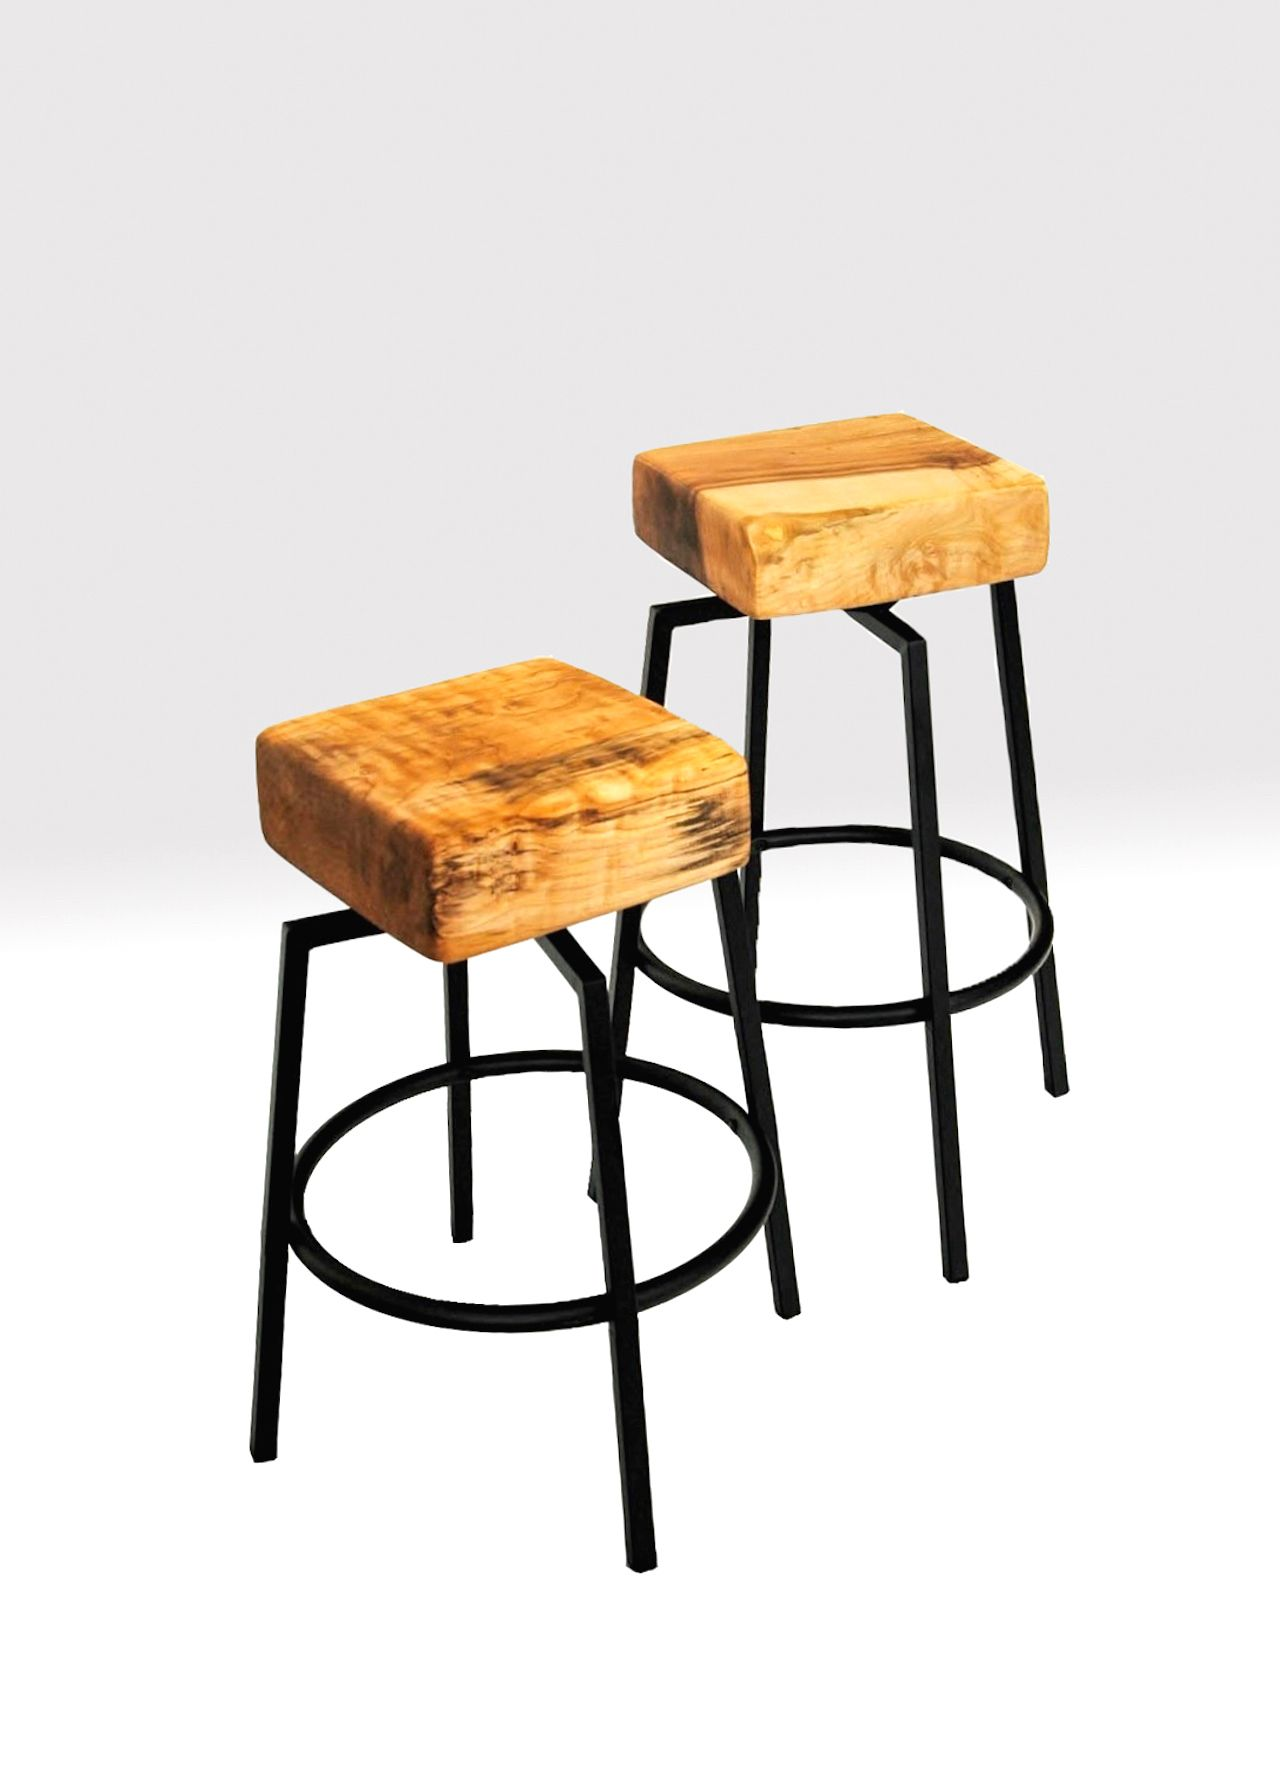 Pleasant Figured Maple Butcher Block And Metal Spinning Stools Inzonedesignstudio Interior Chair Design Inzonedesignstudiocom